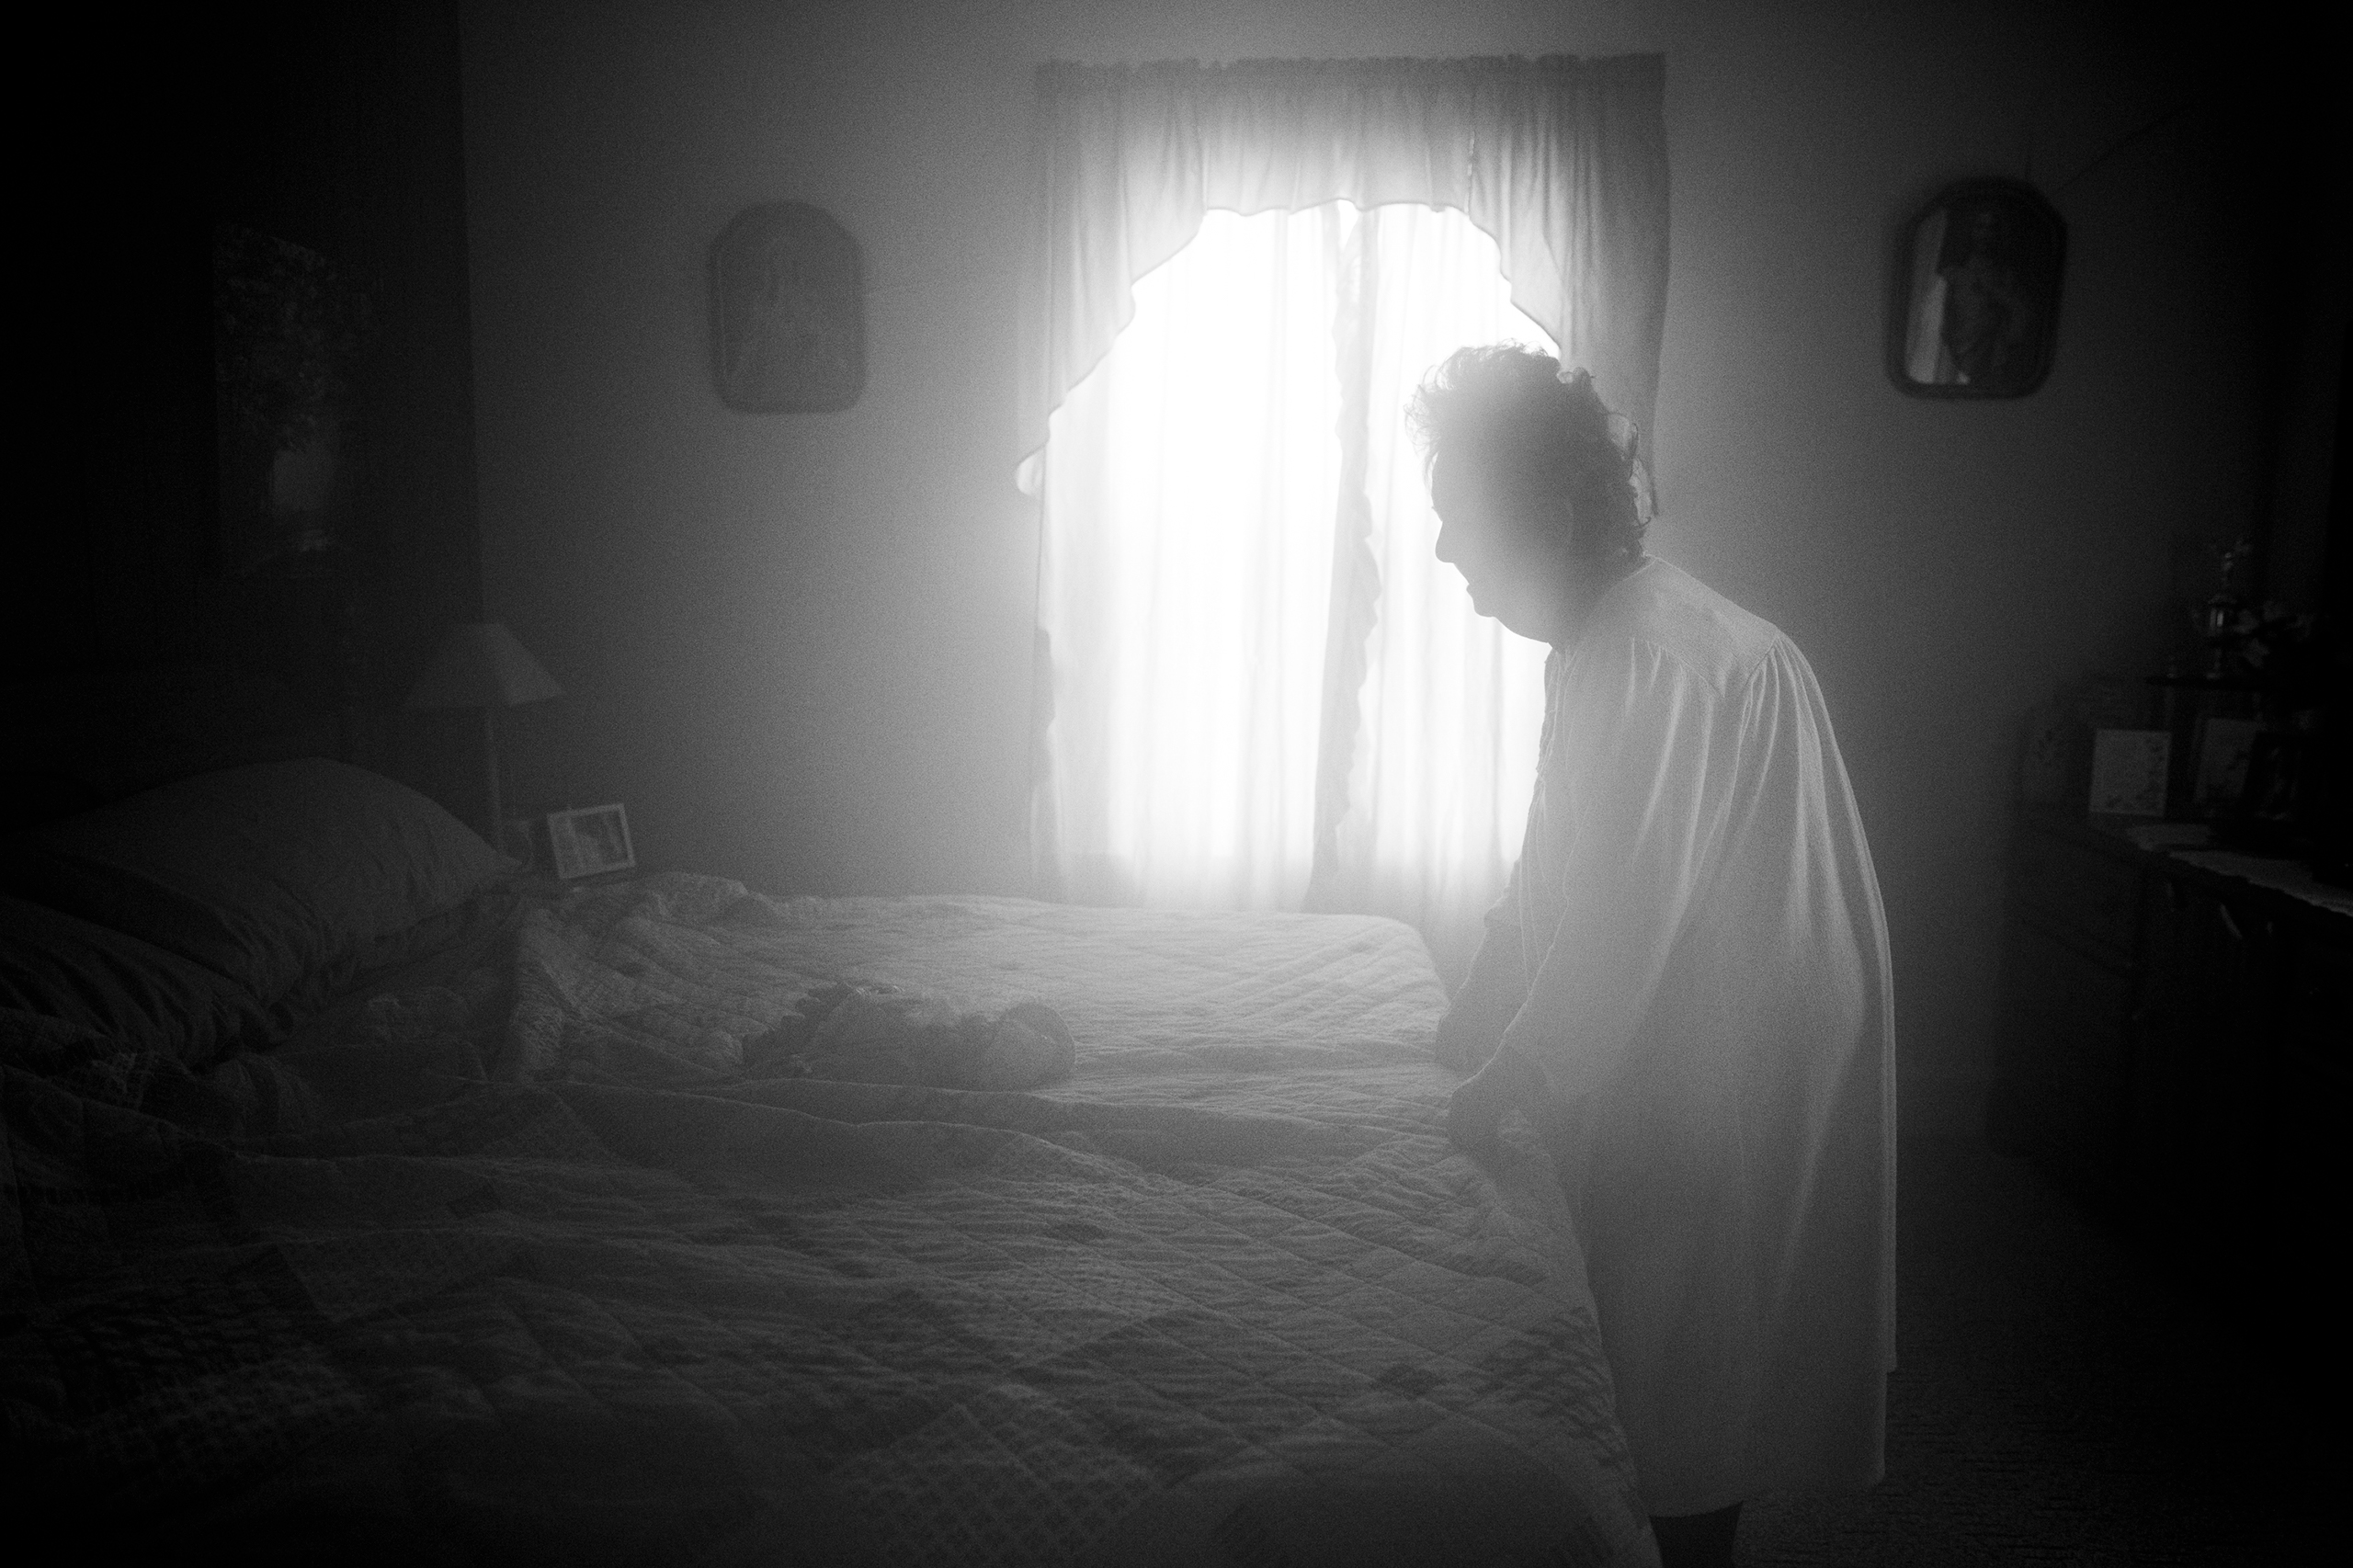 Karen stands at the end of her bed in a foggy room